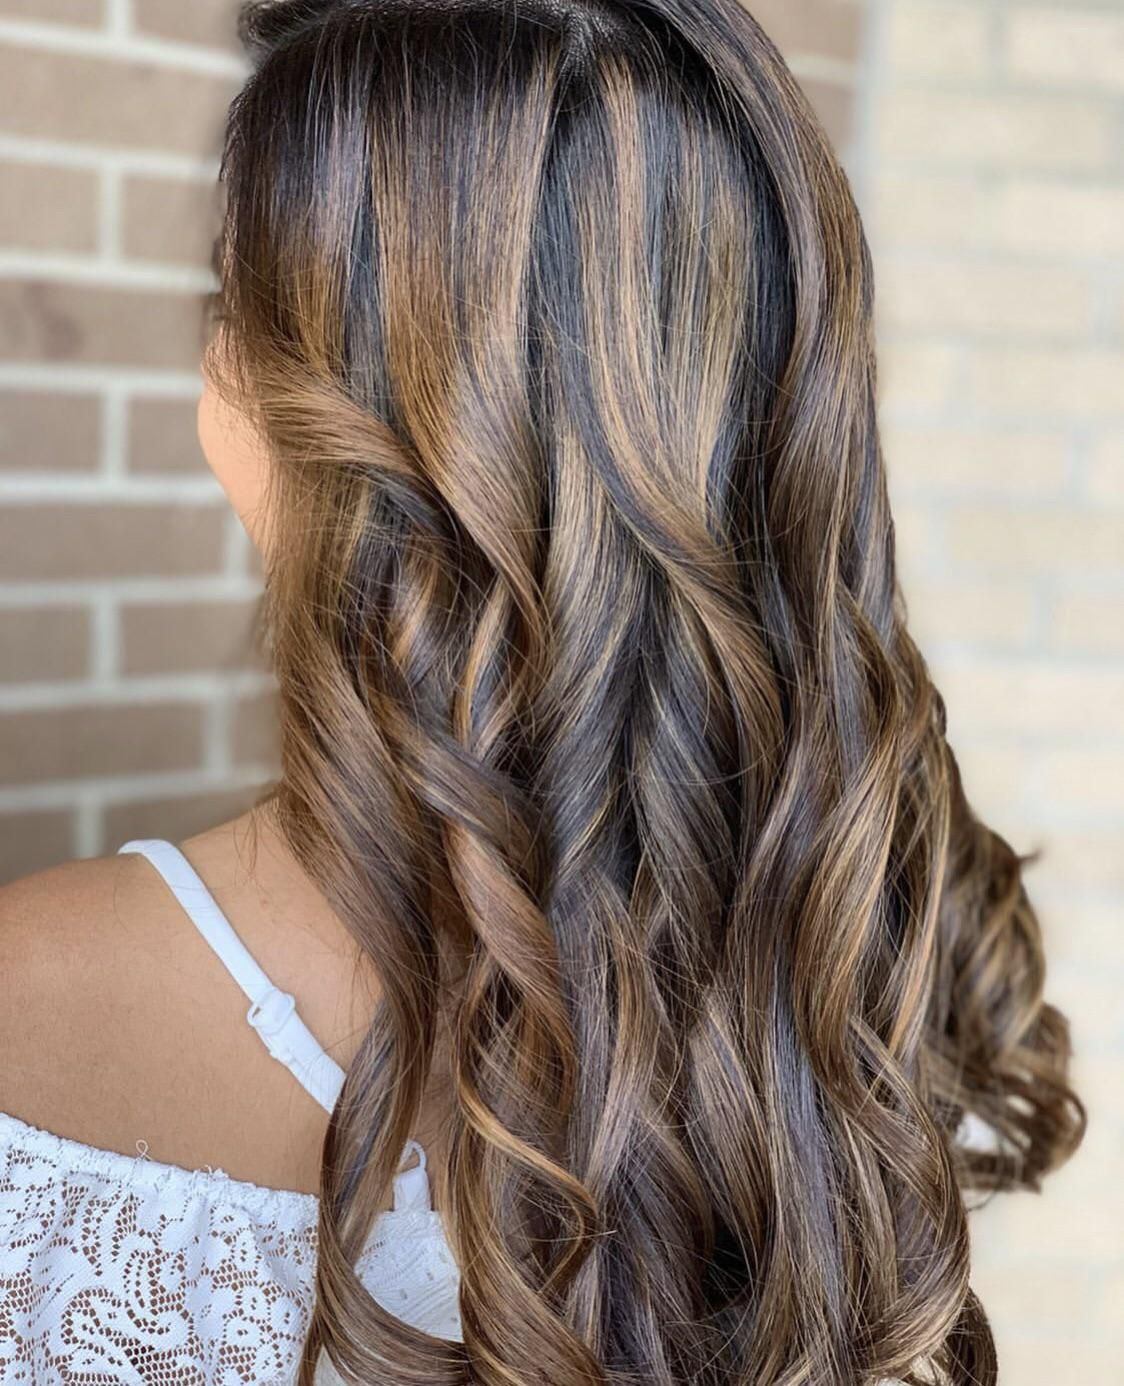 Deals for balayage